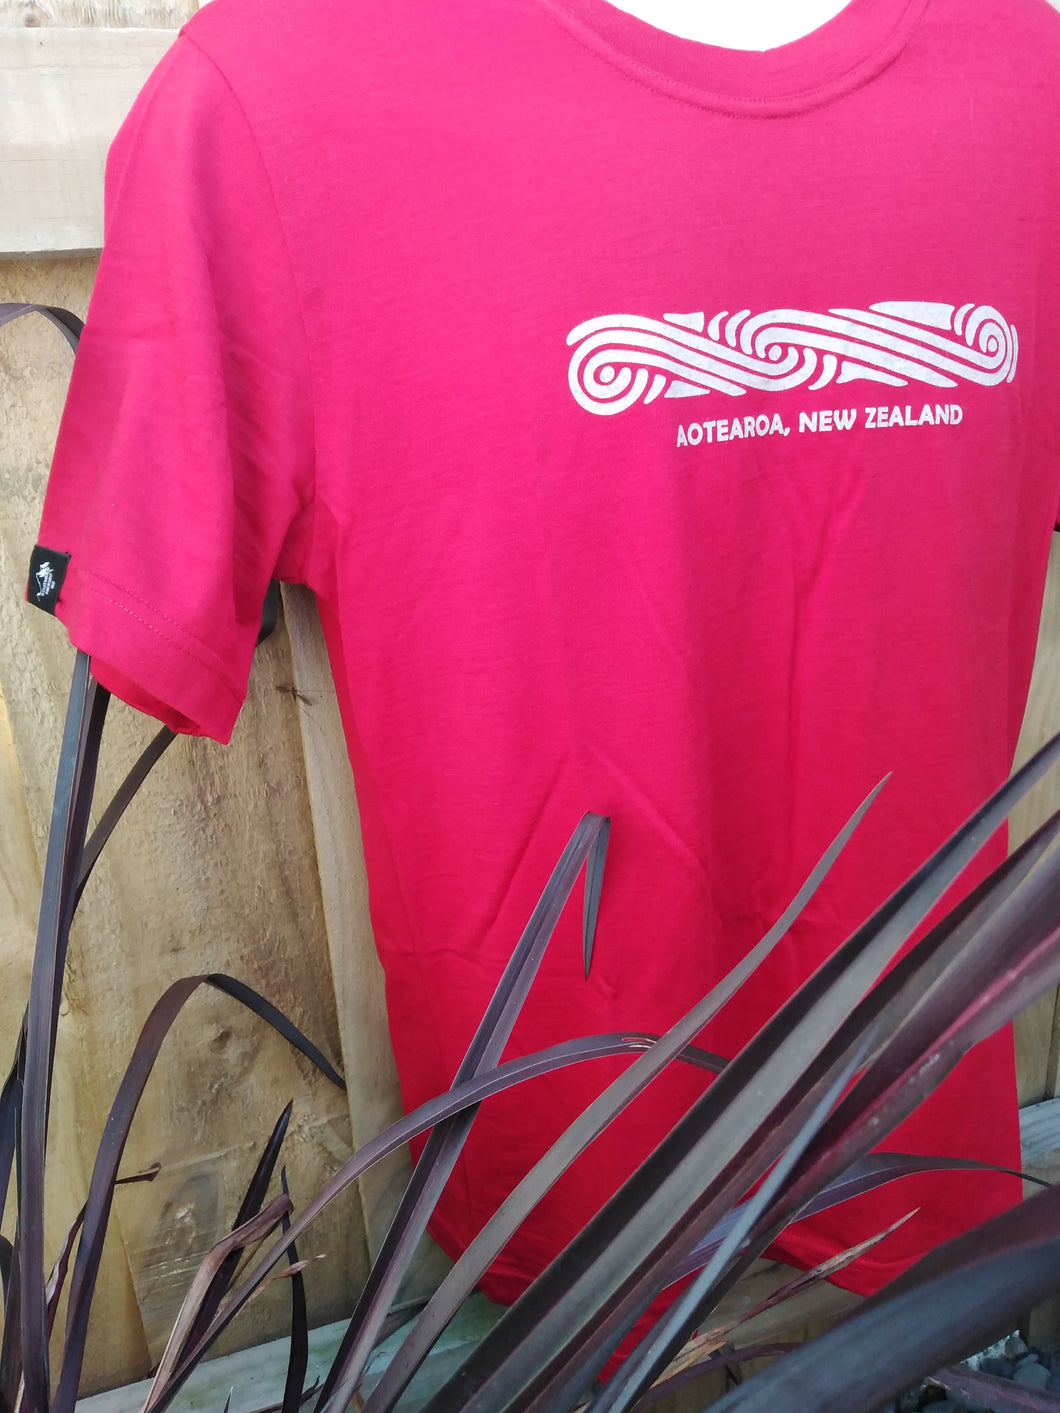 T Shirt. 100% Merino Wool. New Zealand Made.